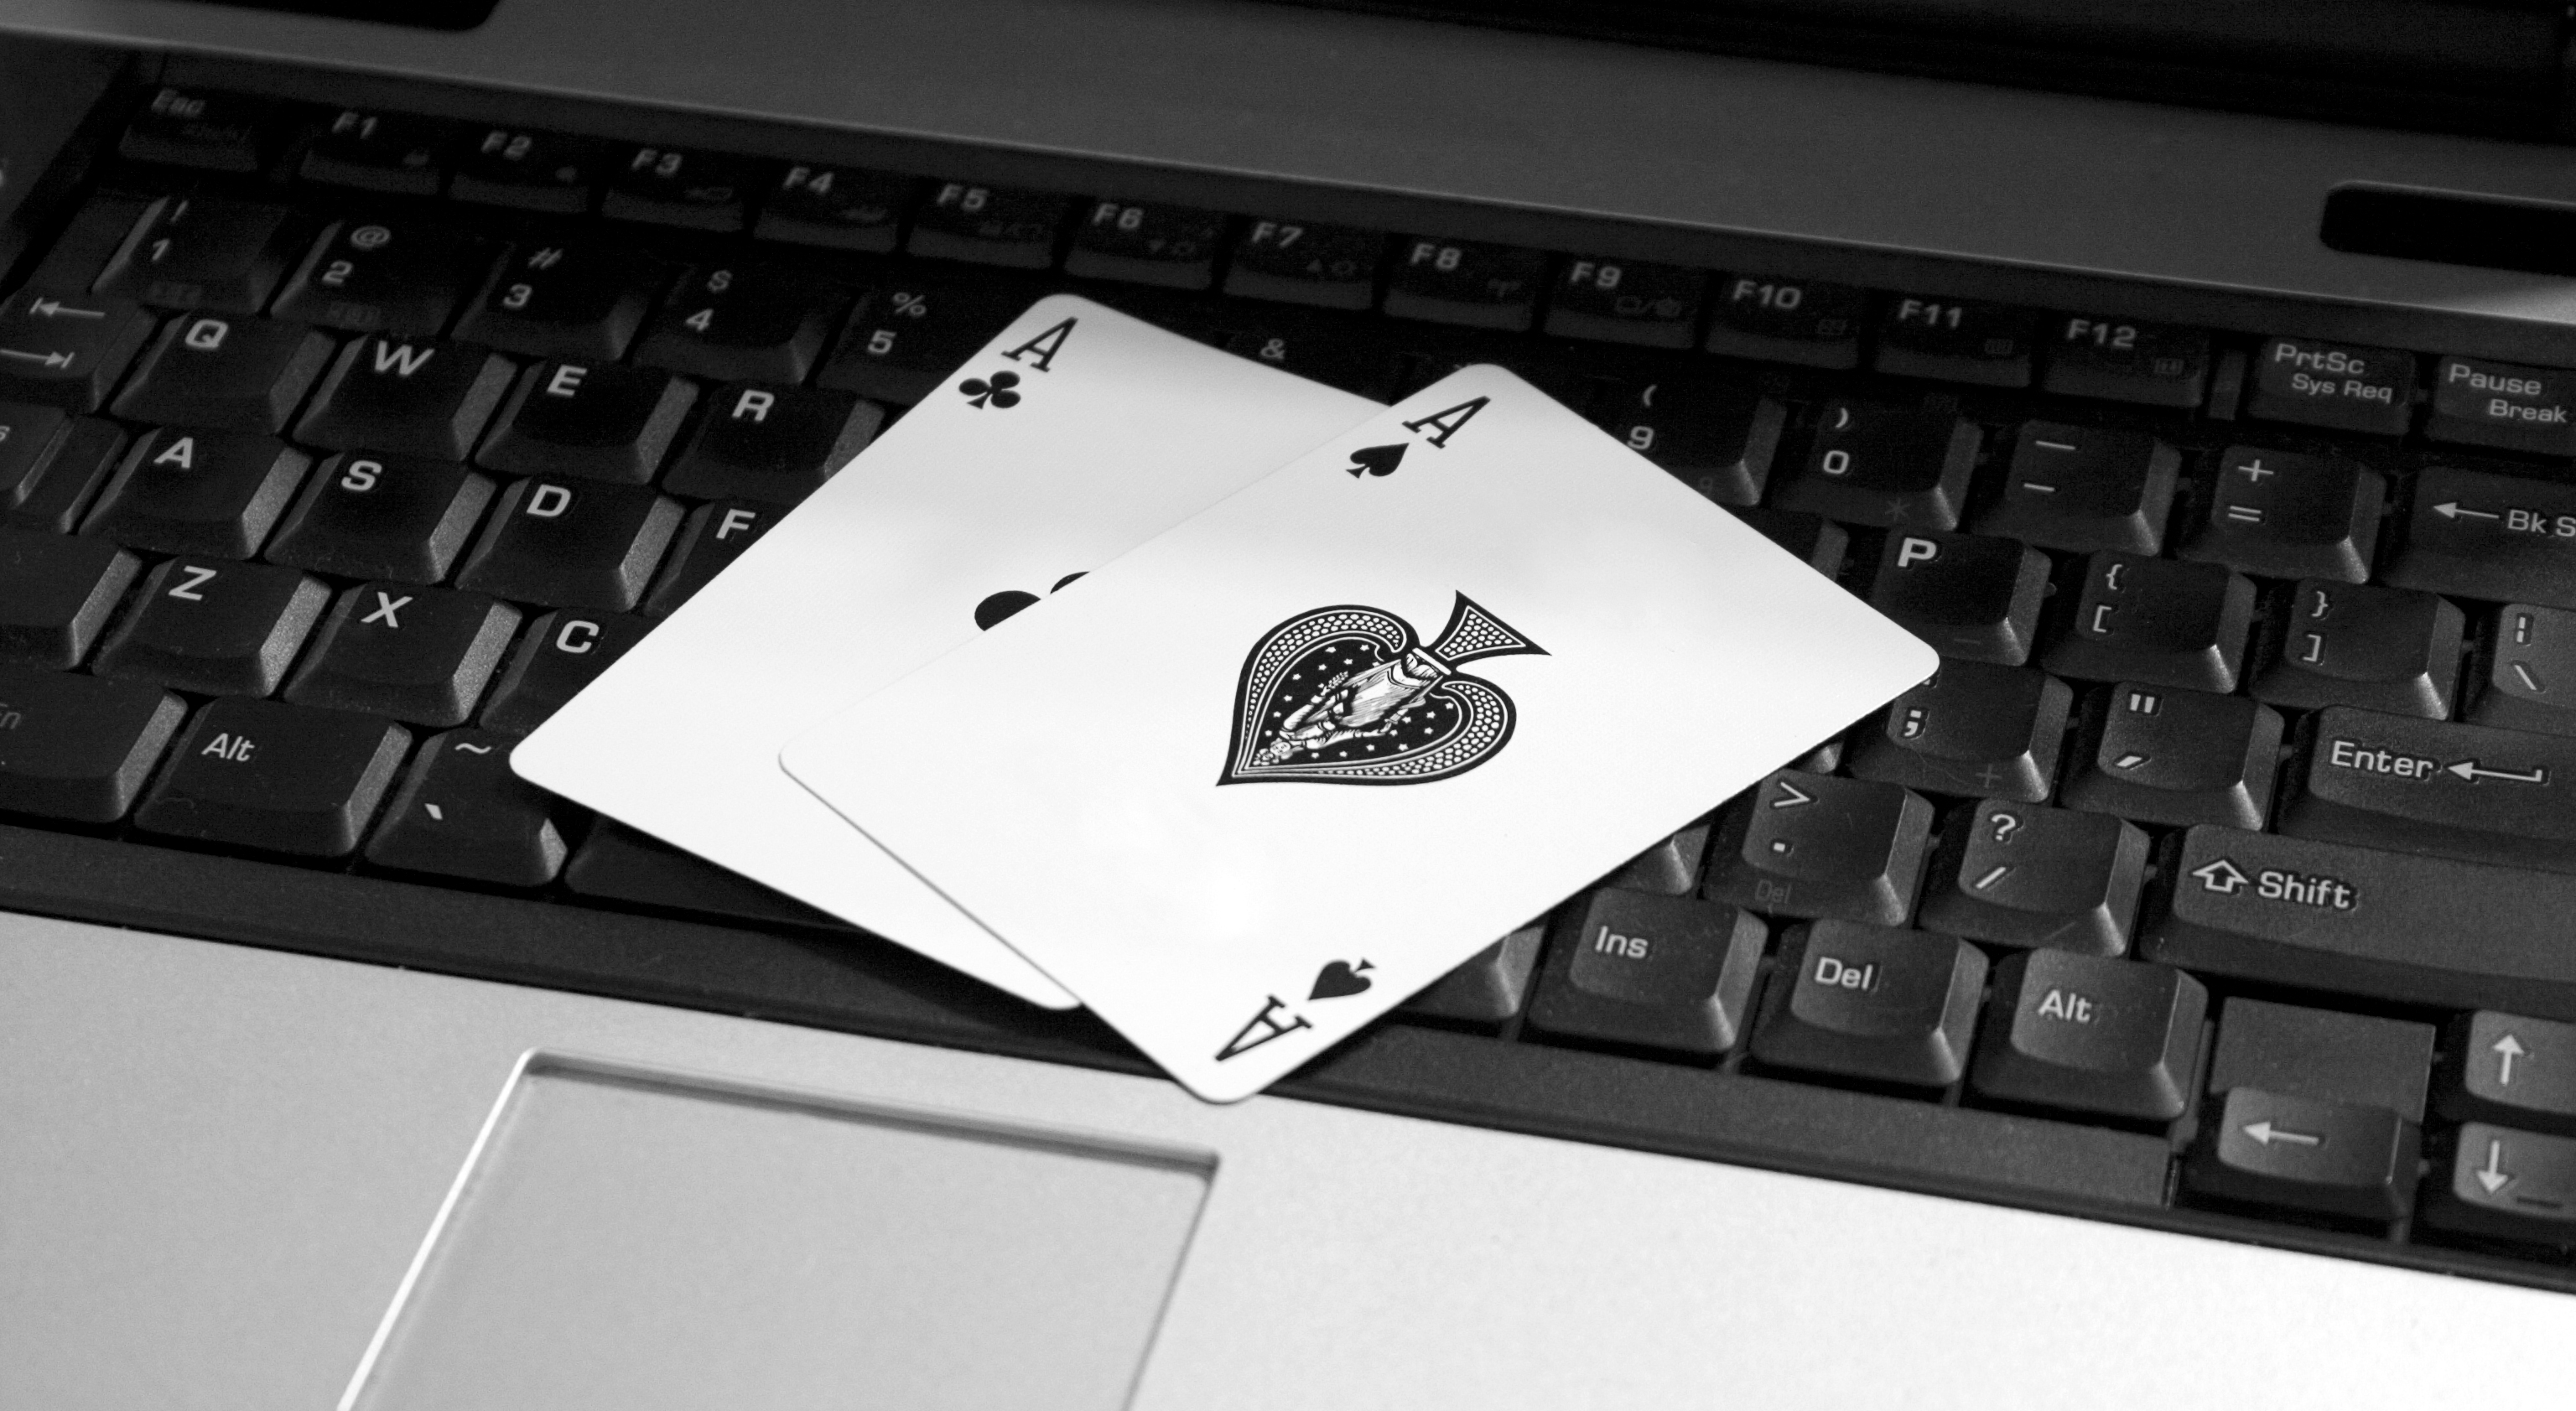 online poker | All the action from the casino floor: news, views and more